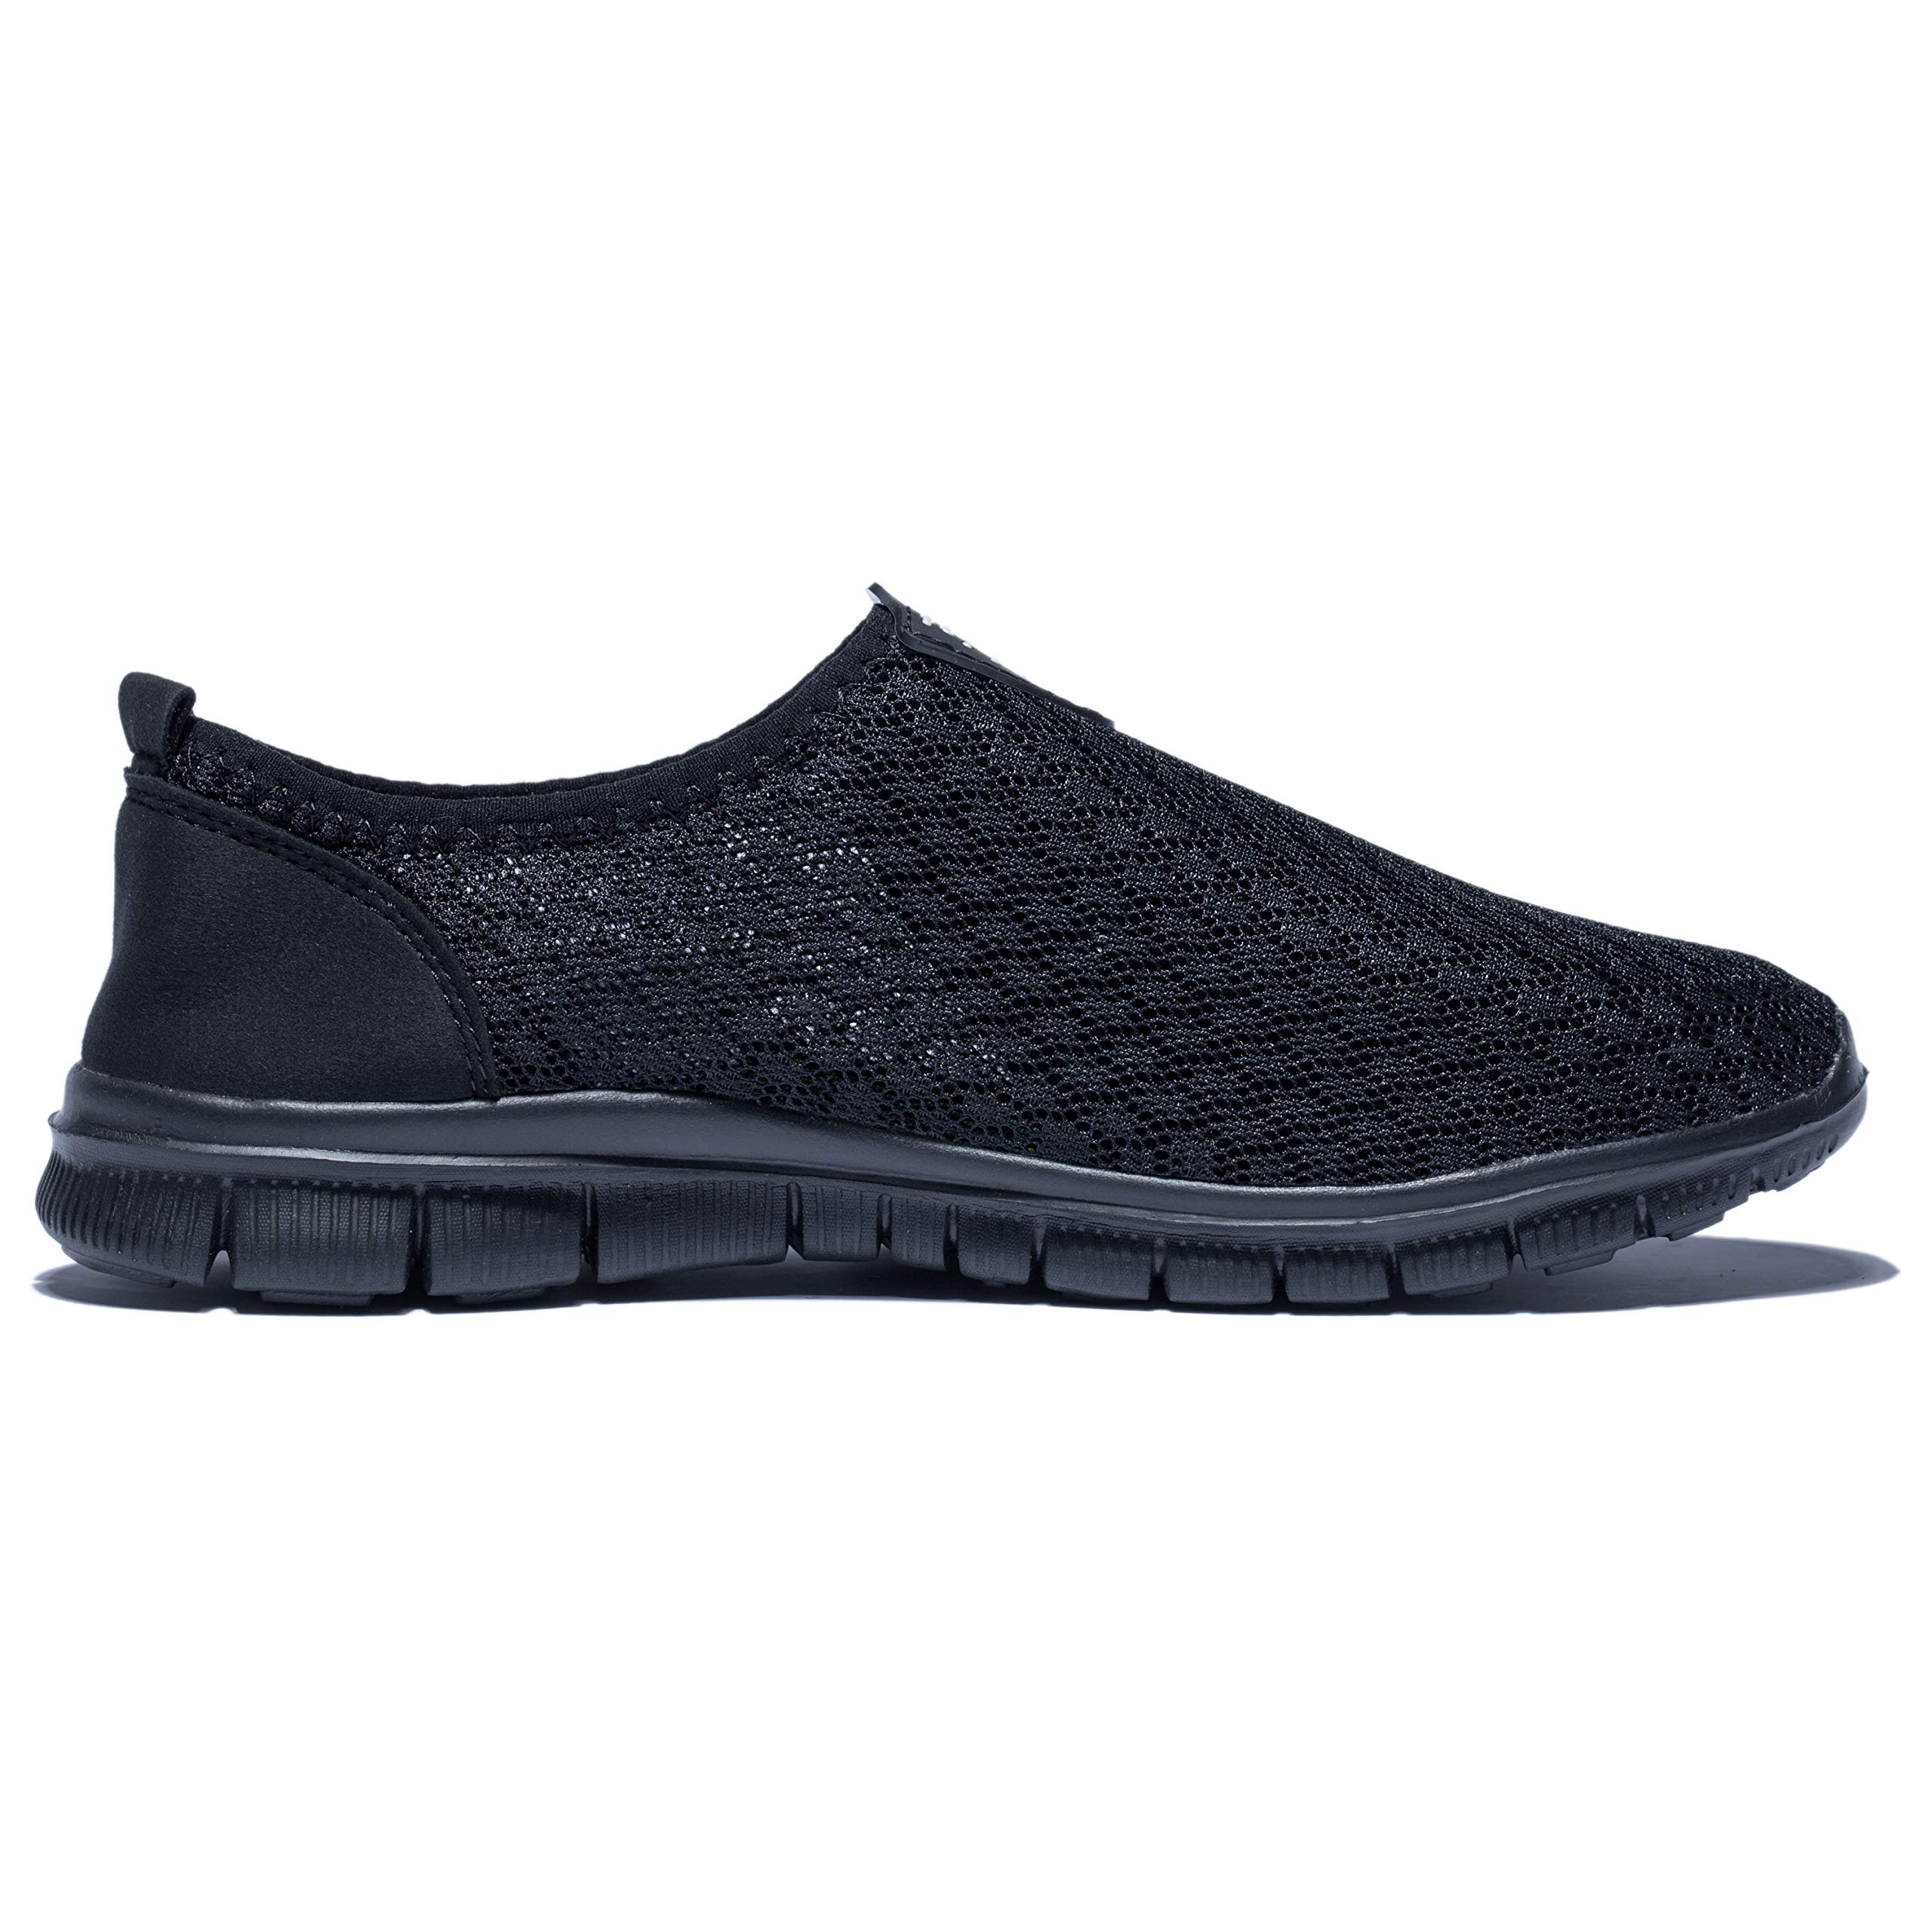 KENSBUY Mens Breathable and Durable Sports Running Shoes Lightweight Mesh Walking Sneakers (8 M US Men, Black/Black) by KENSBUY (Image #4)